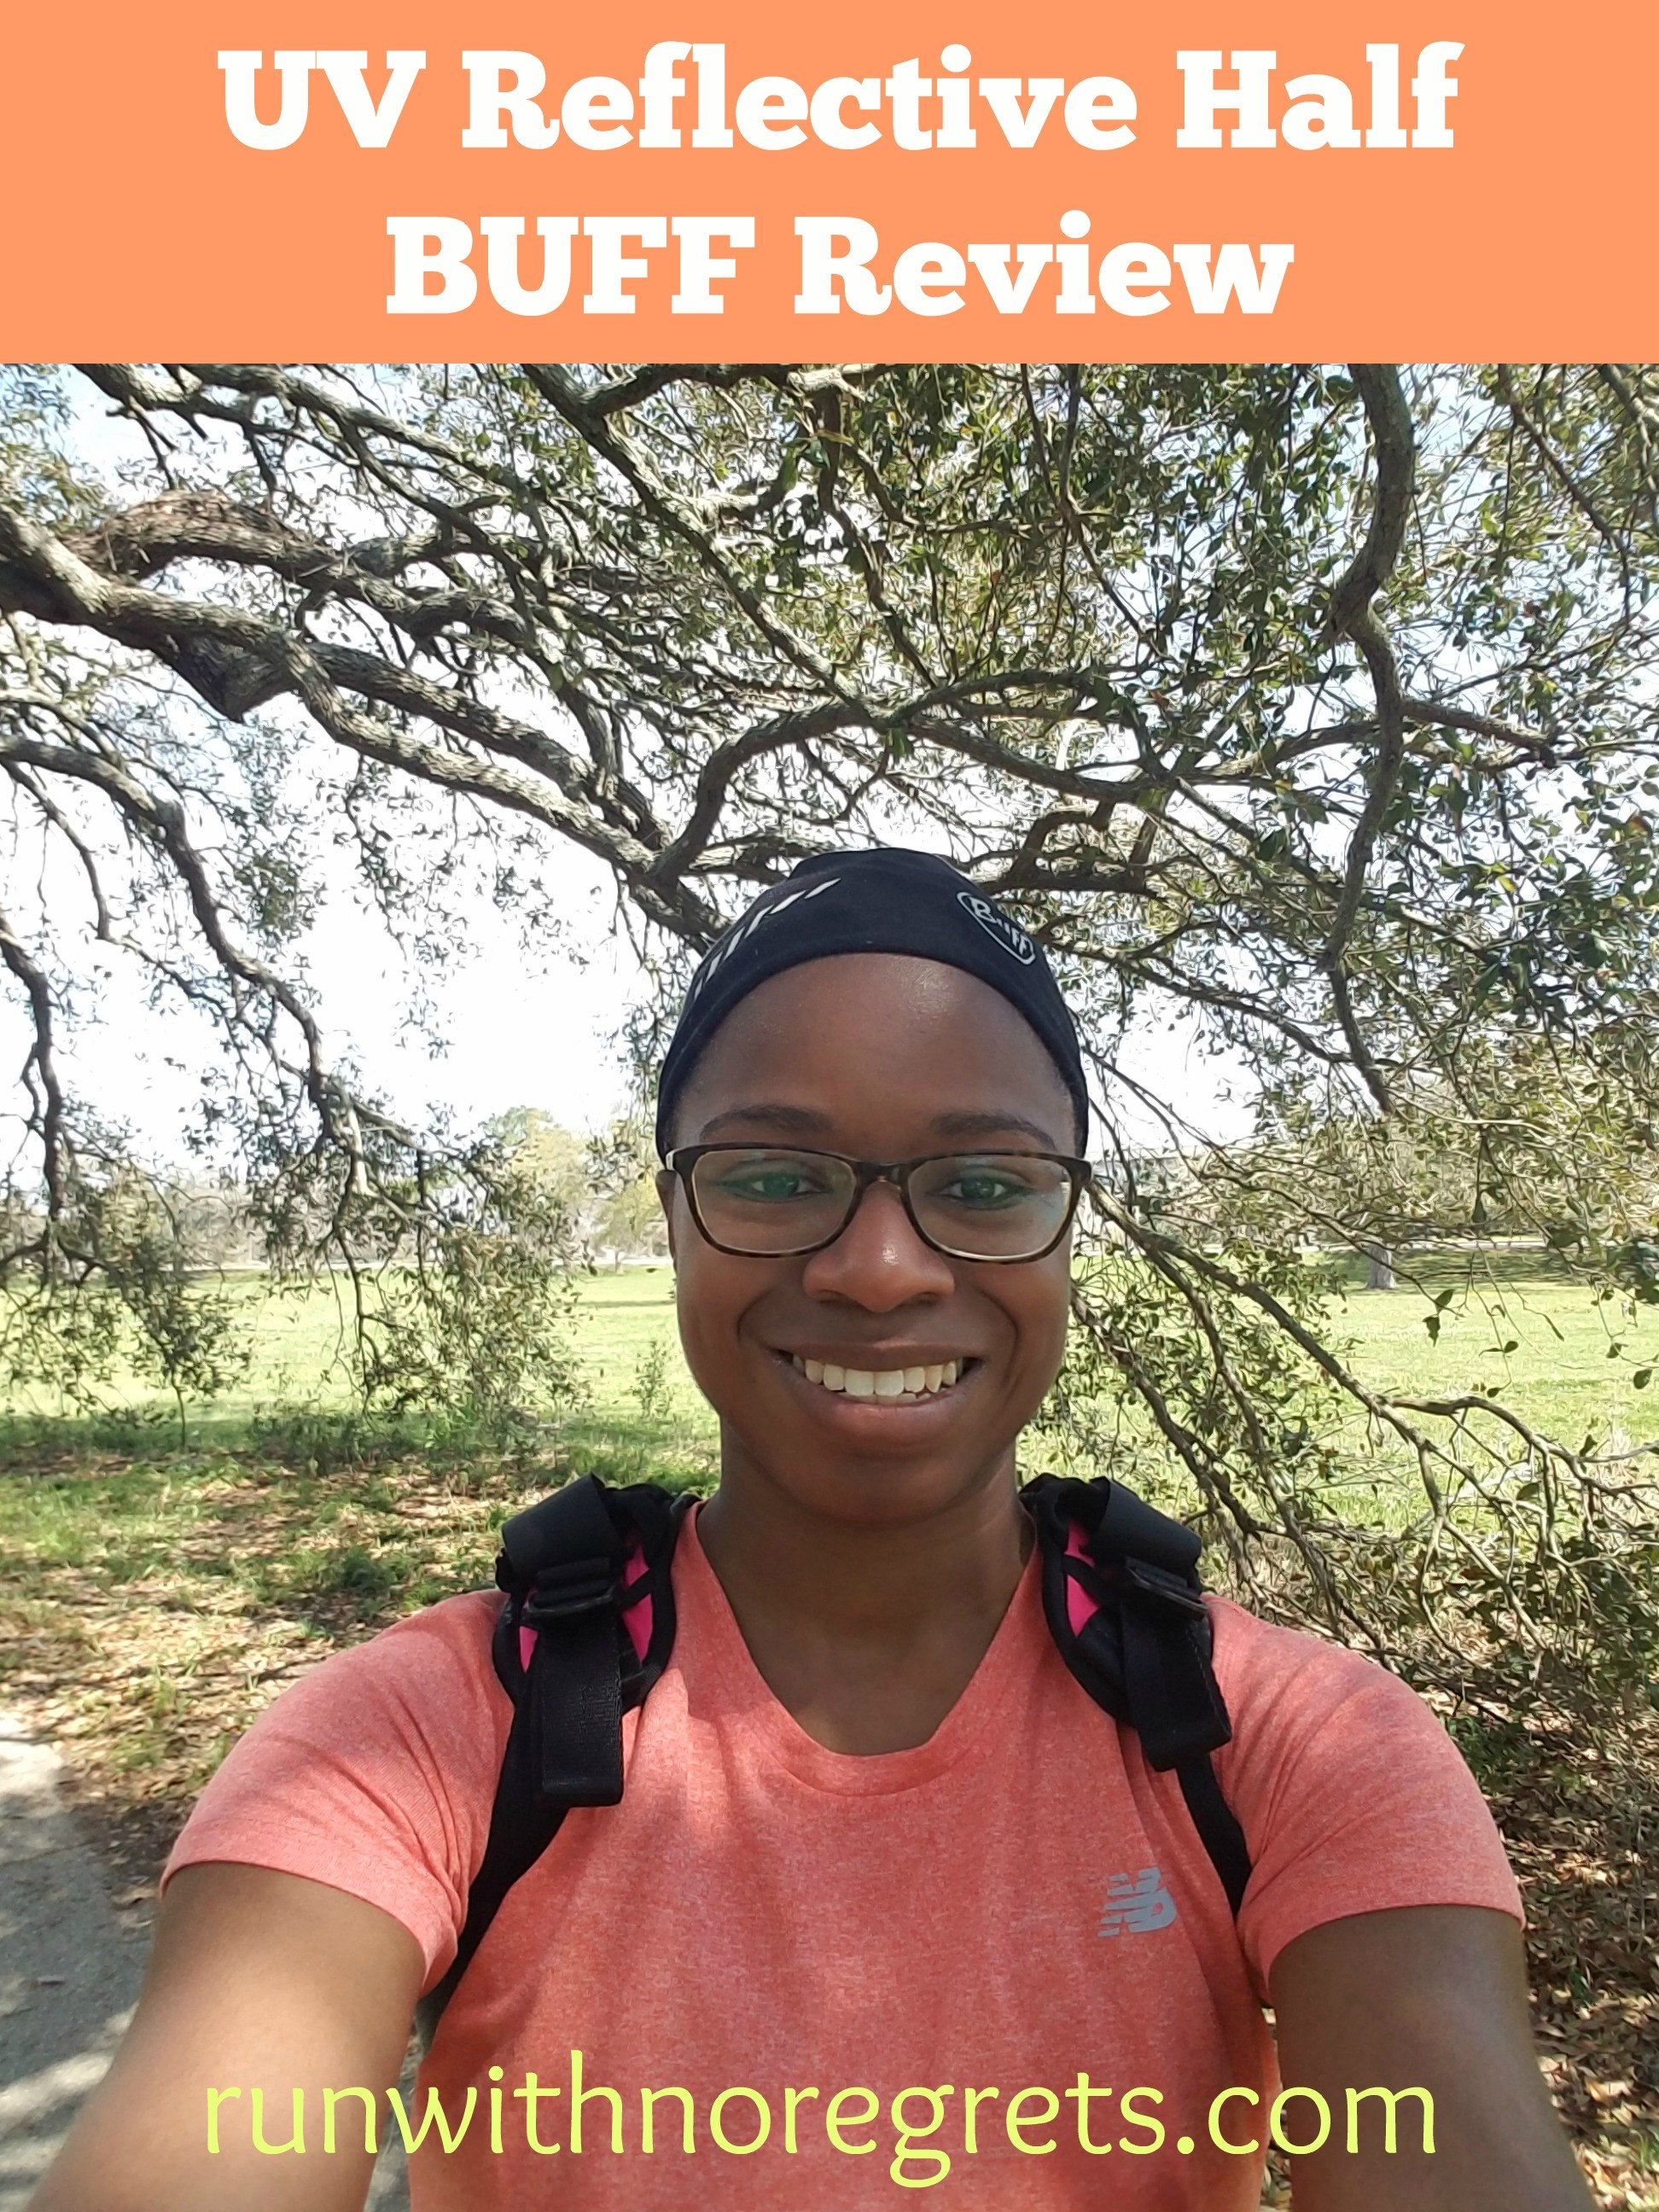 Check out my review of the UV Reflective Half BUFF - wear it while on the run, cycling, or working out in the gym! Find more product reviews at runwithnoregrets.com!